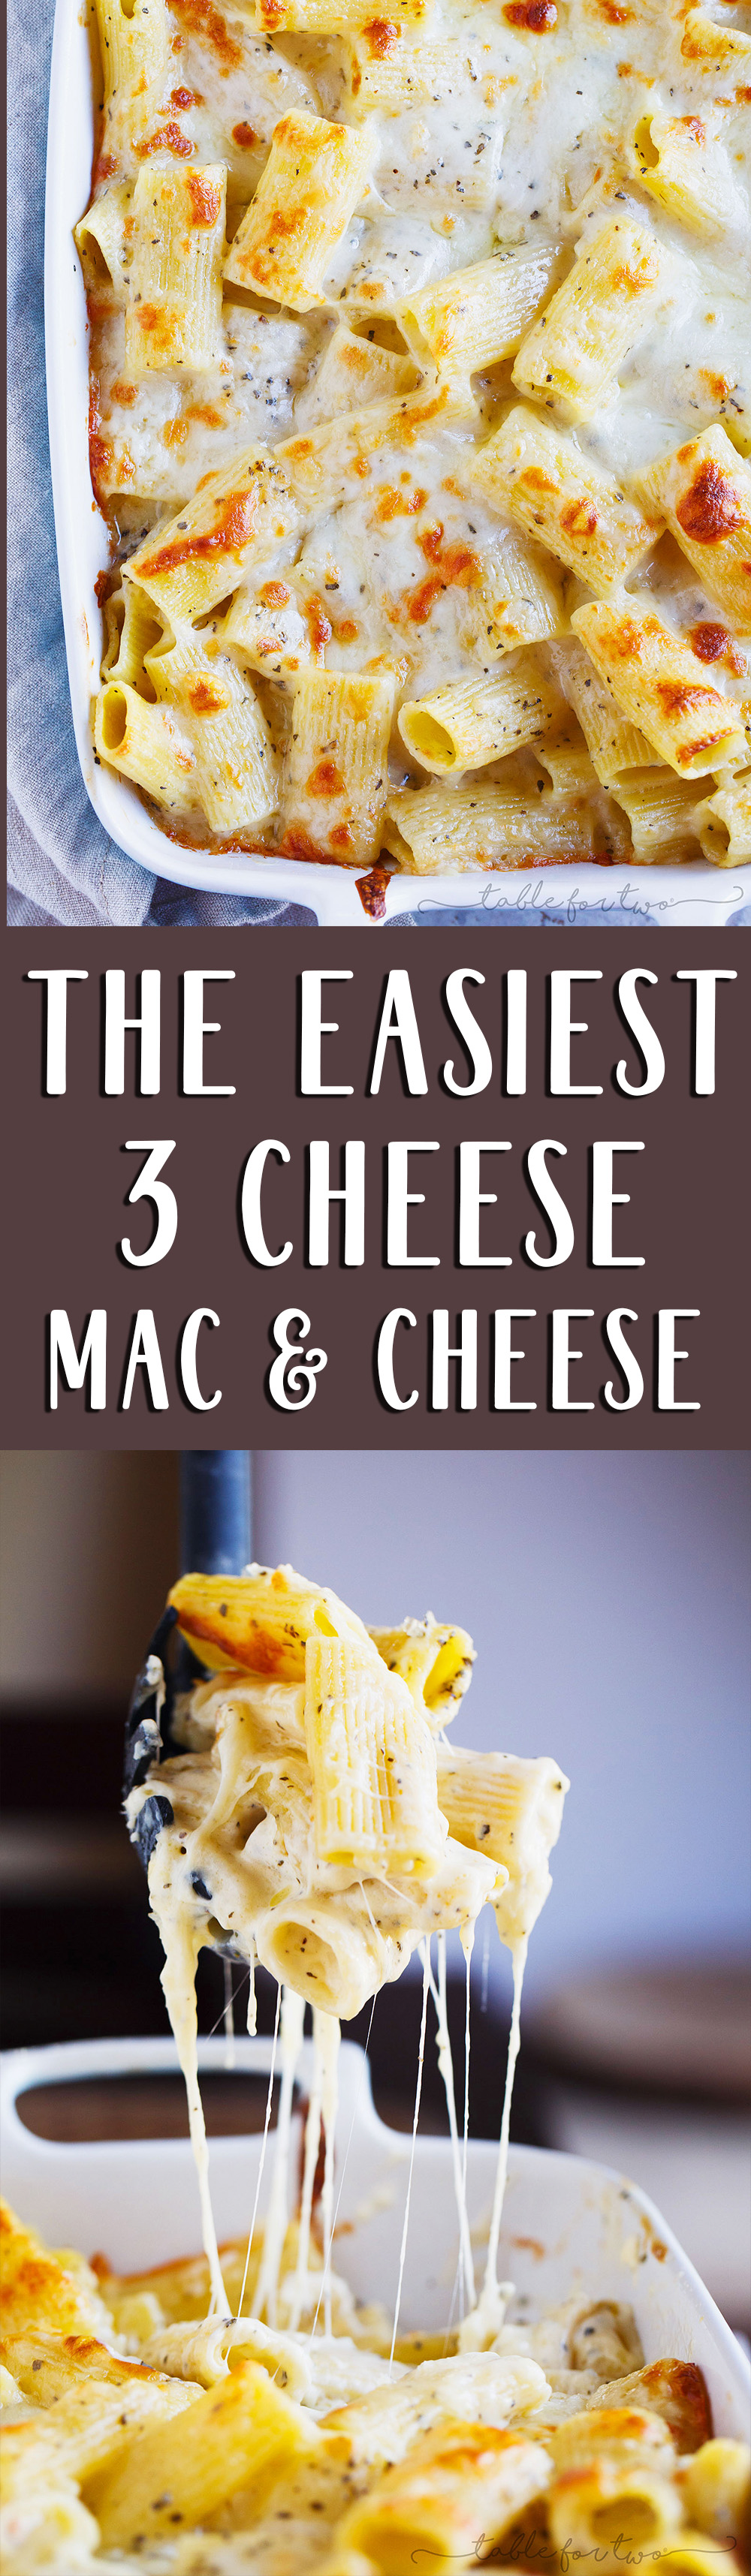 The cheesiest and most decadent yet the easiest three-cheese mac 'n cheese ever!